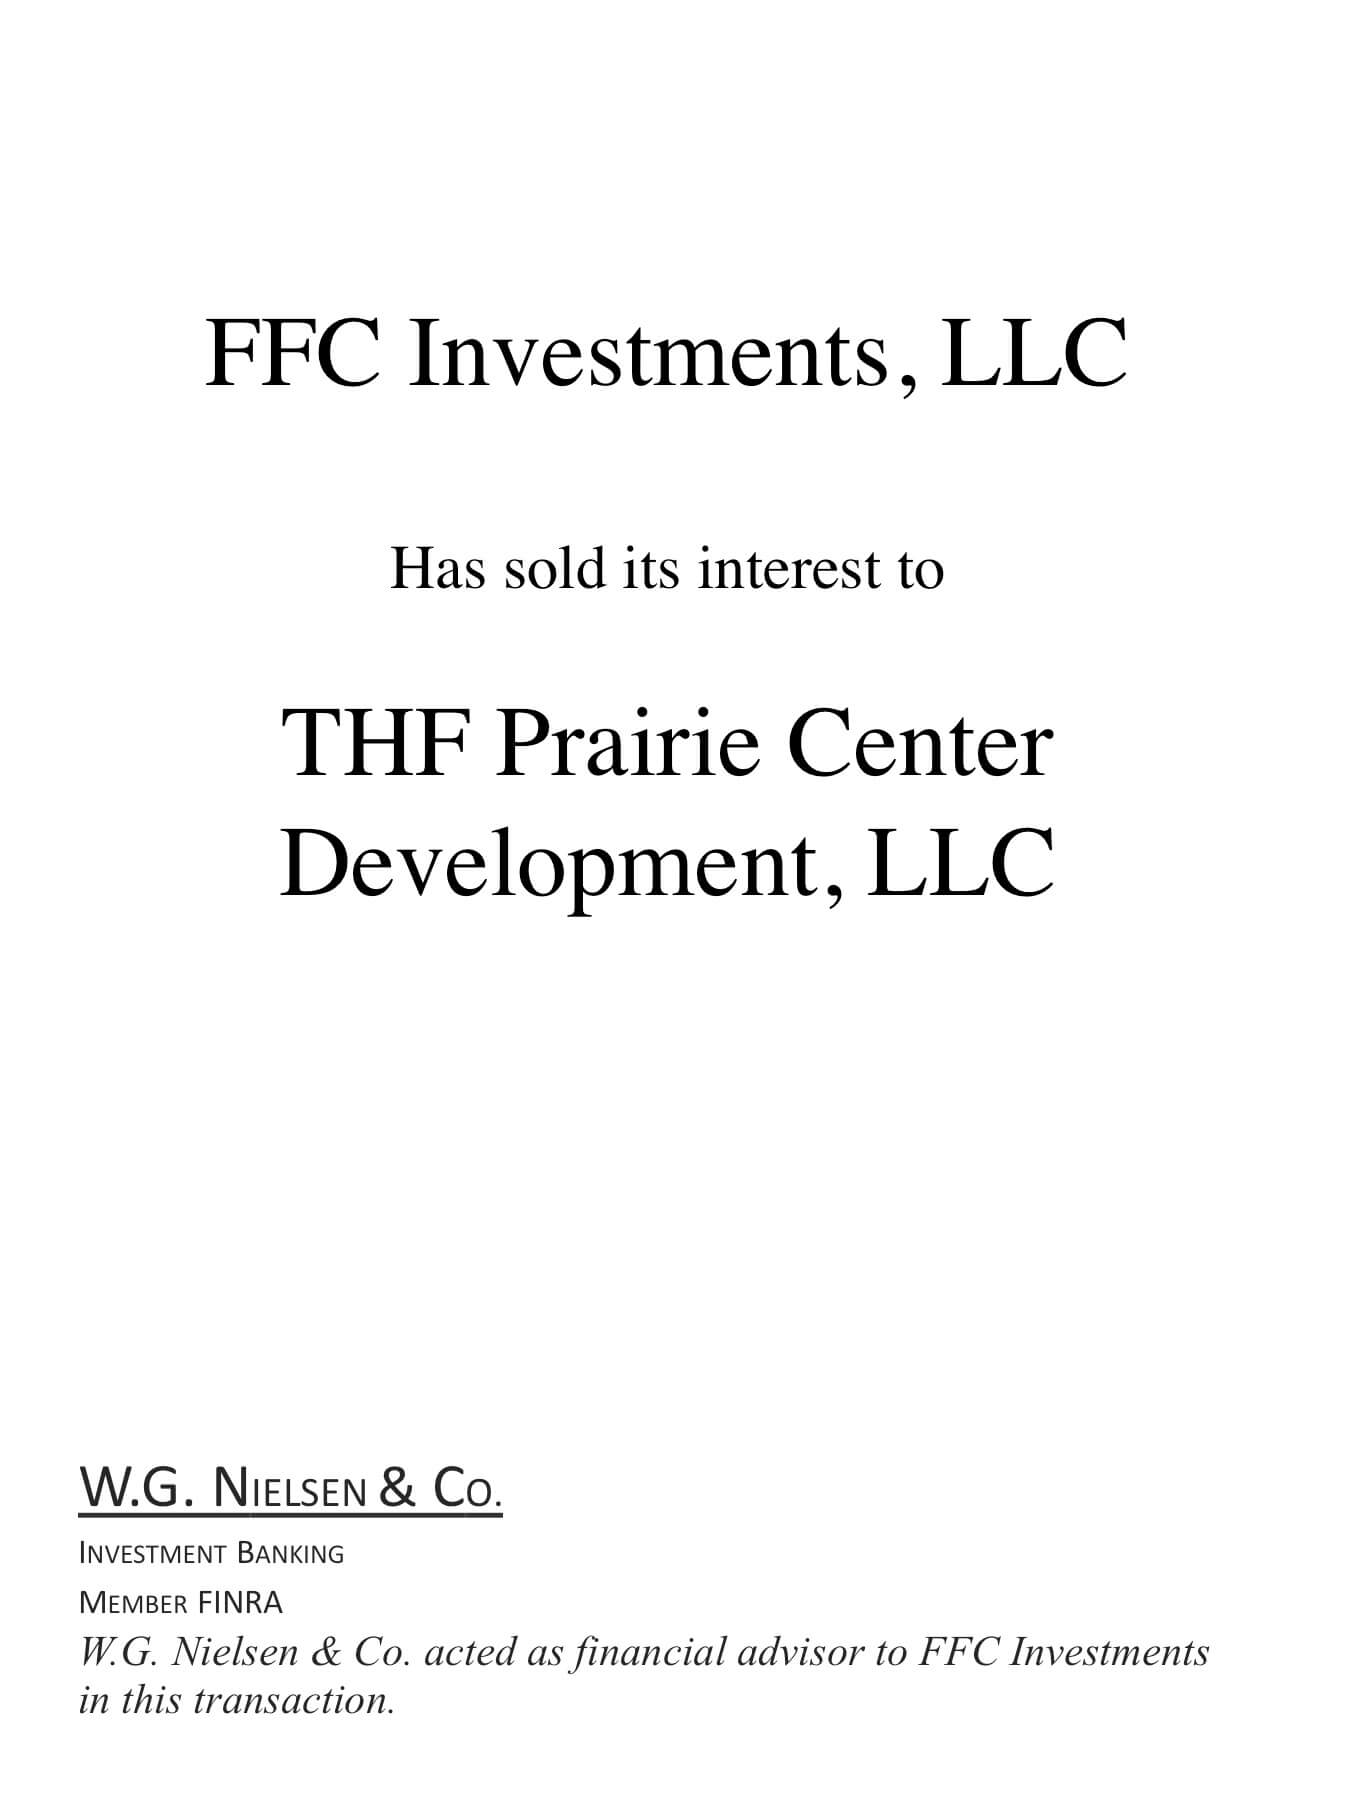 ffc investments investment banking transaction